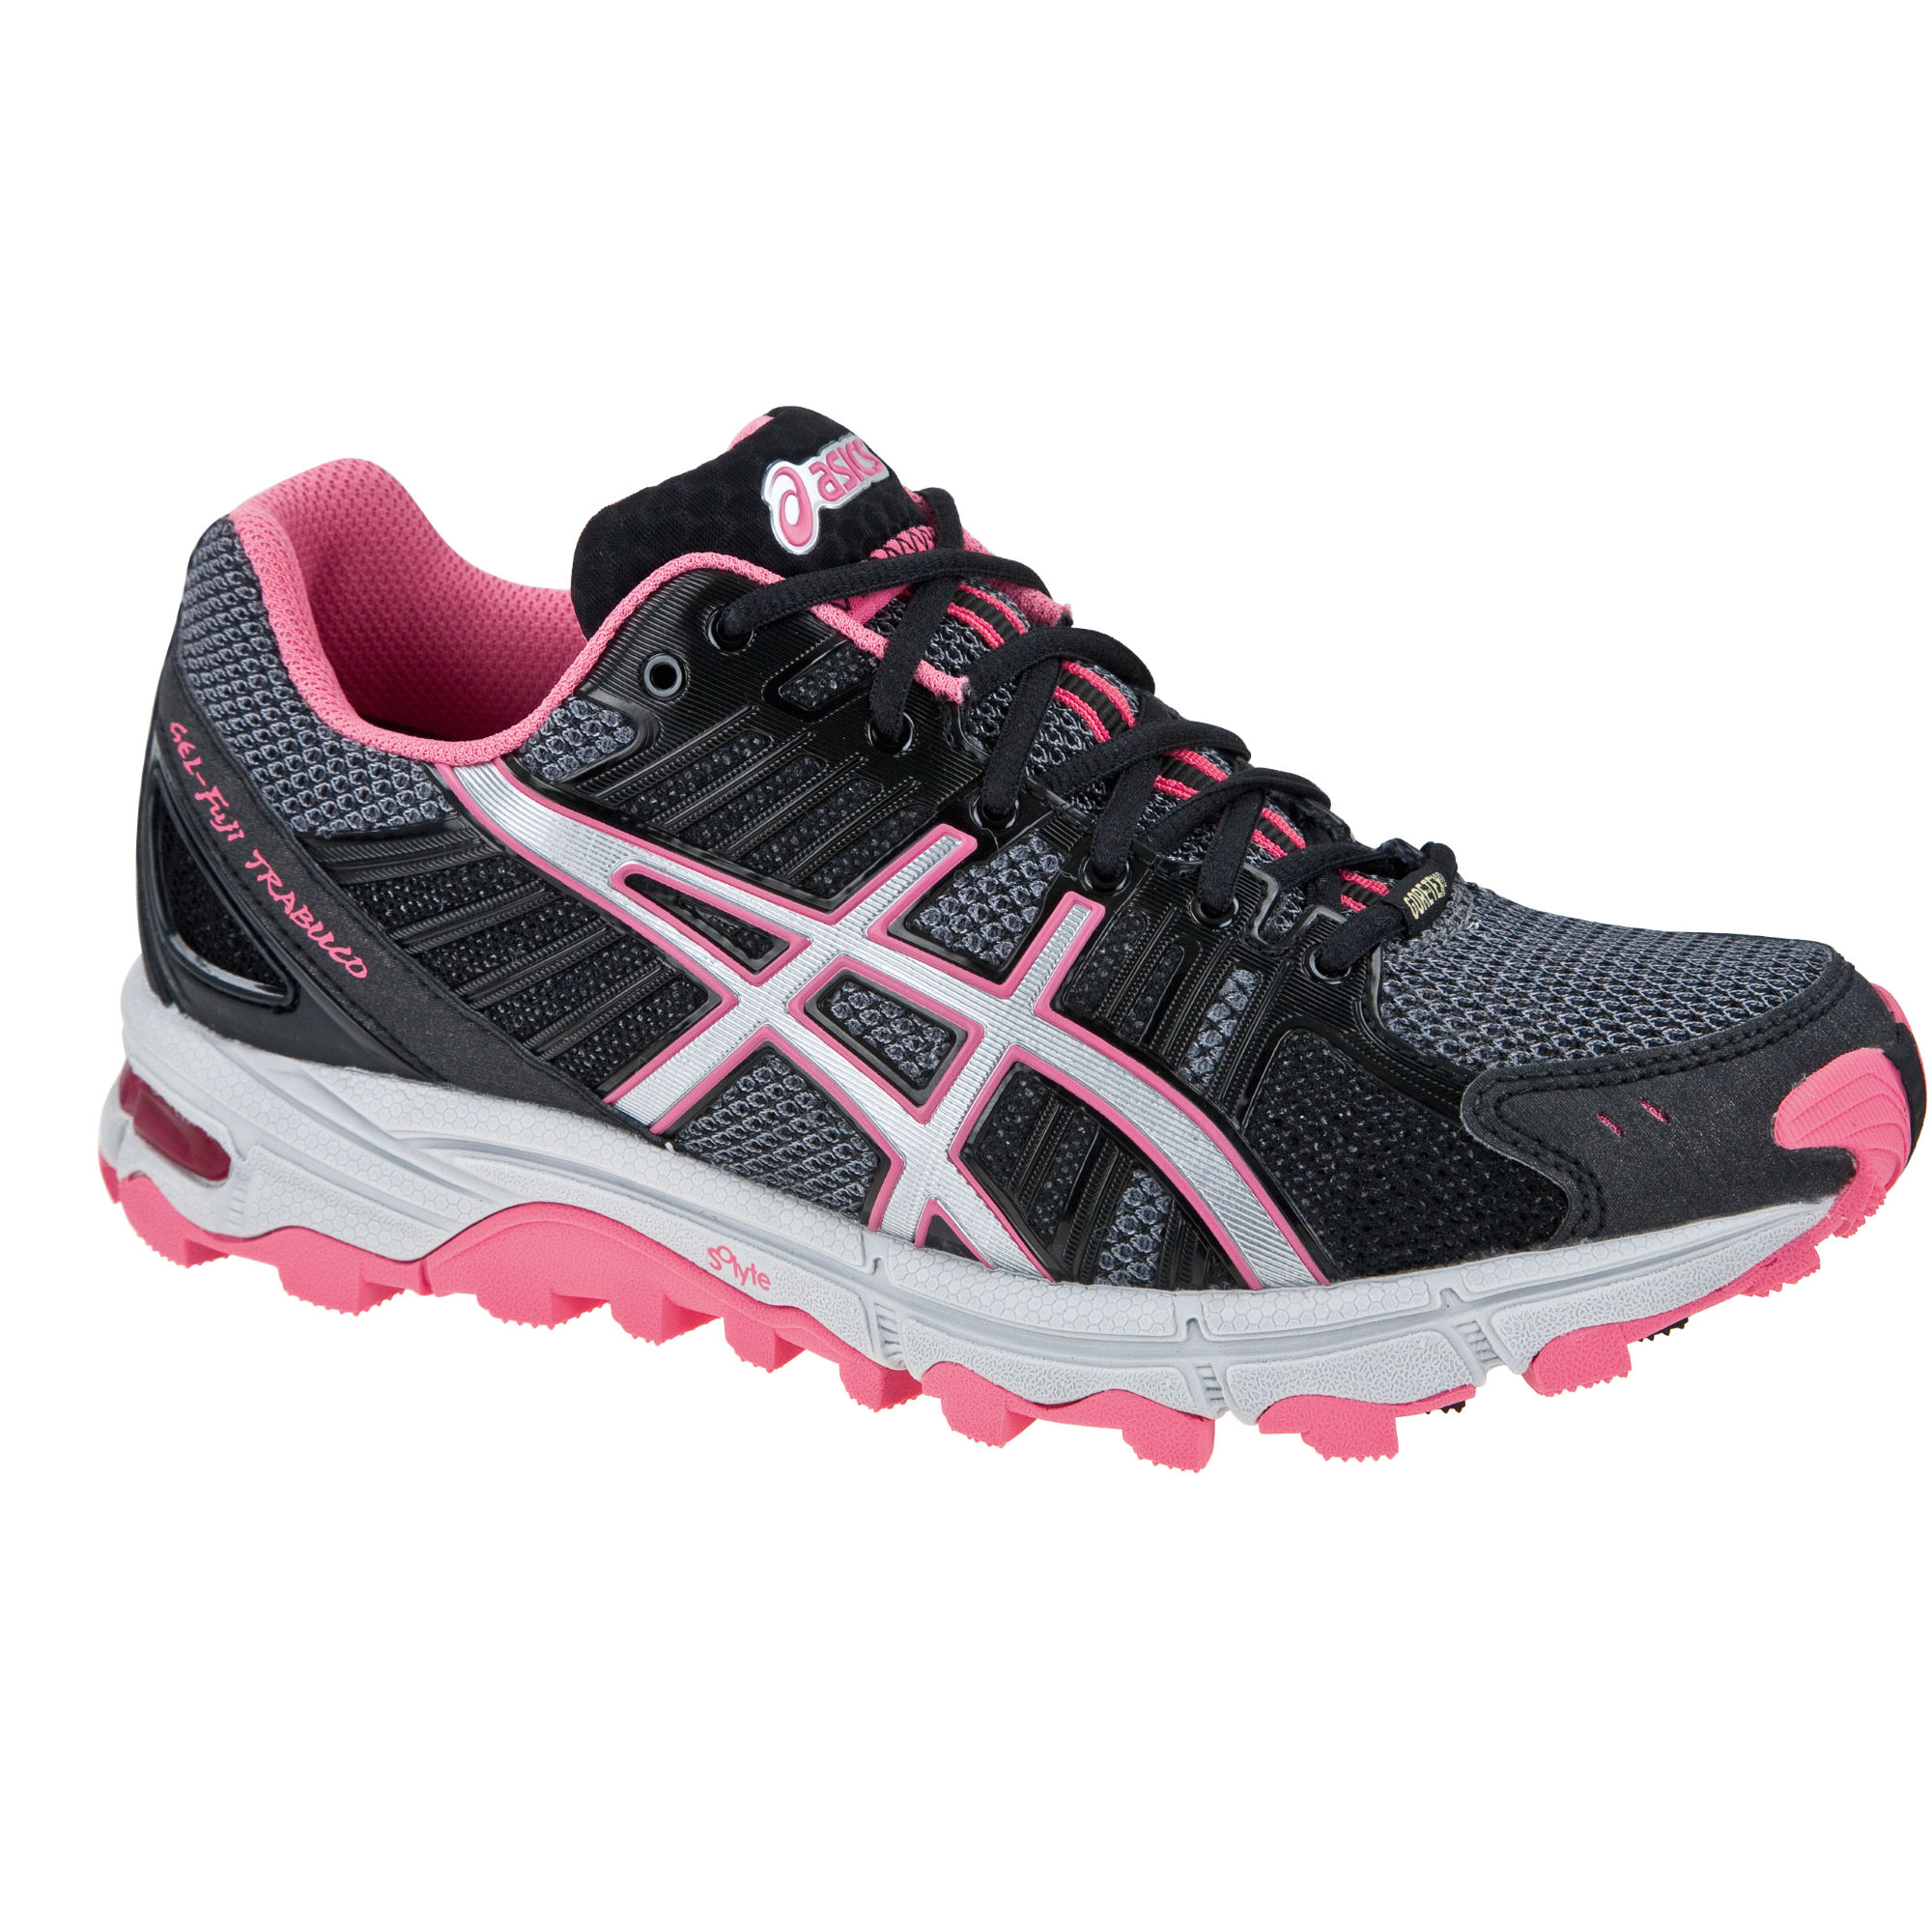 chaussures de running trail asics ladies gel fuji trabuco neutral gtx shoes aw12 wiggle france. Black Bedroom Furniture Sets. Home Design Ideas